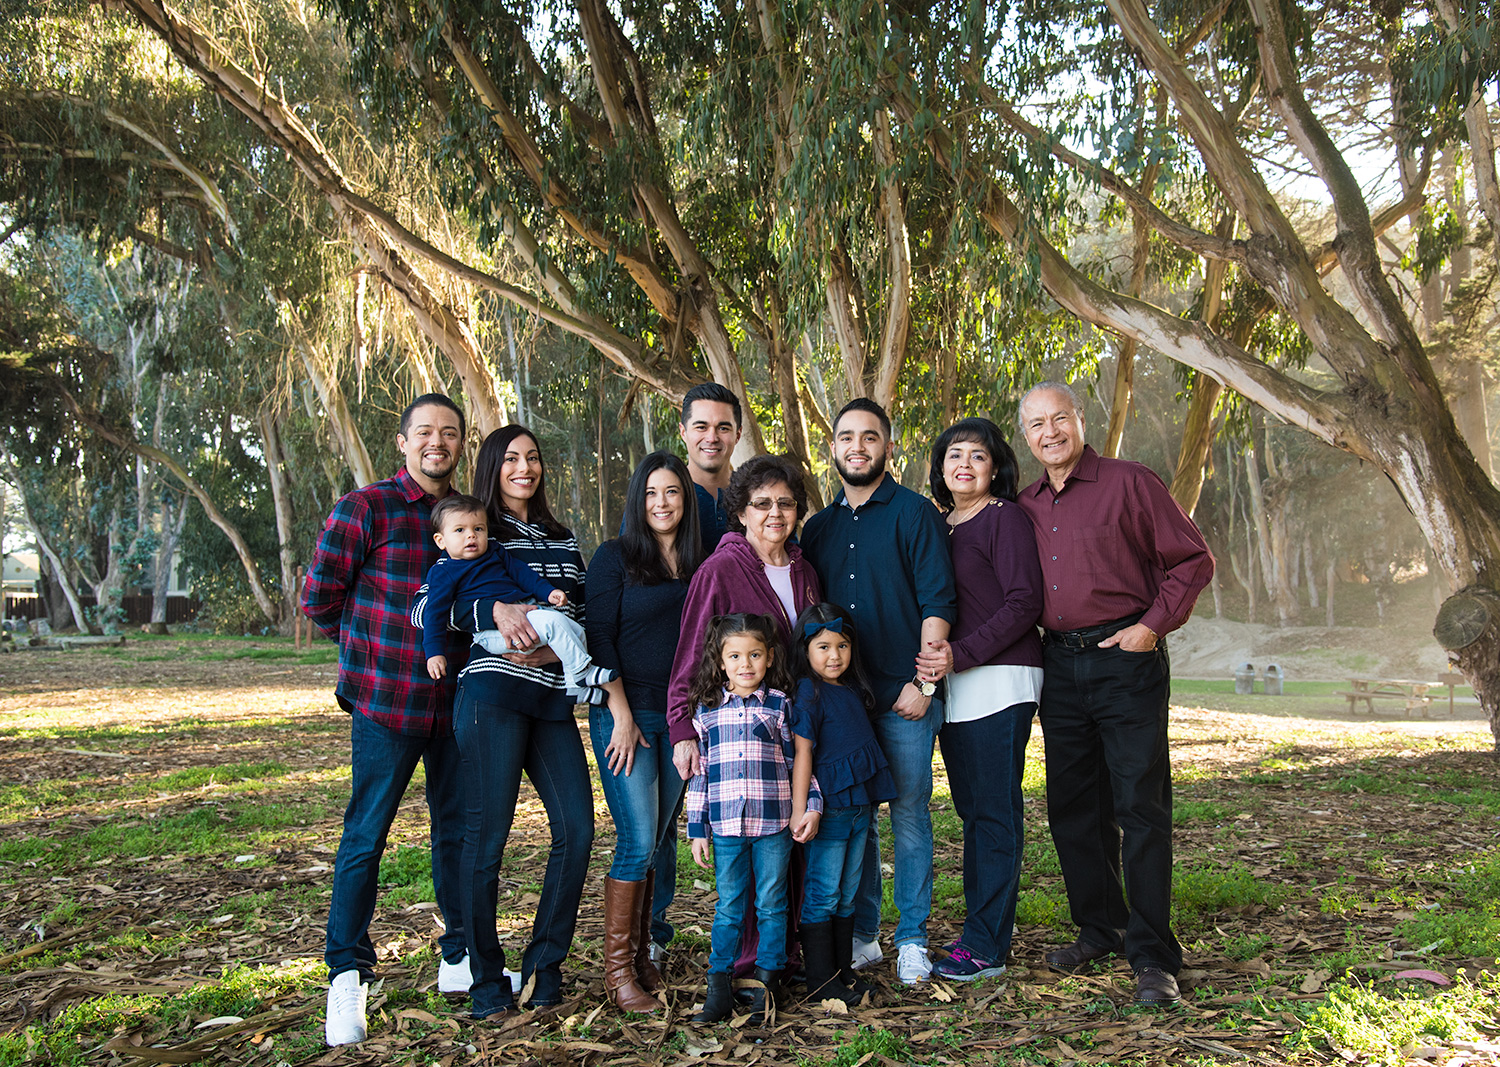 santa cruz family portrait neighborhood park locations